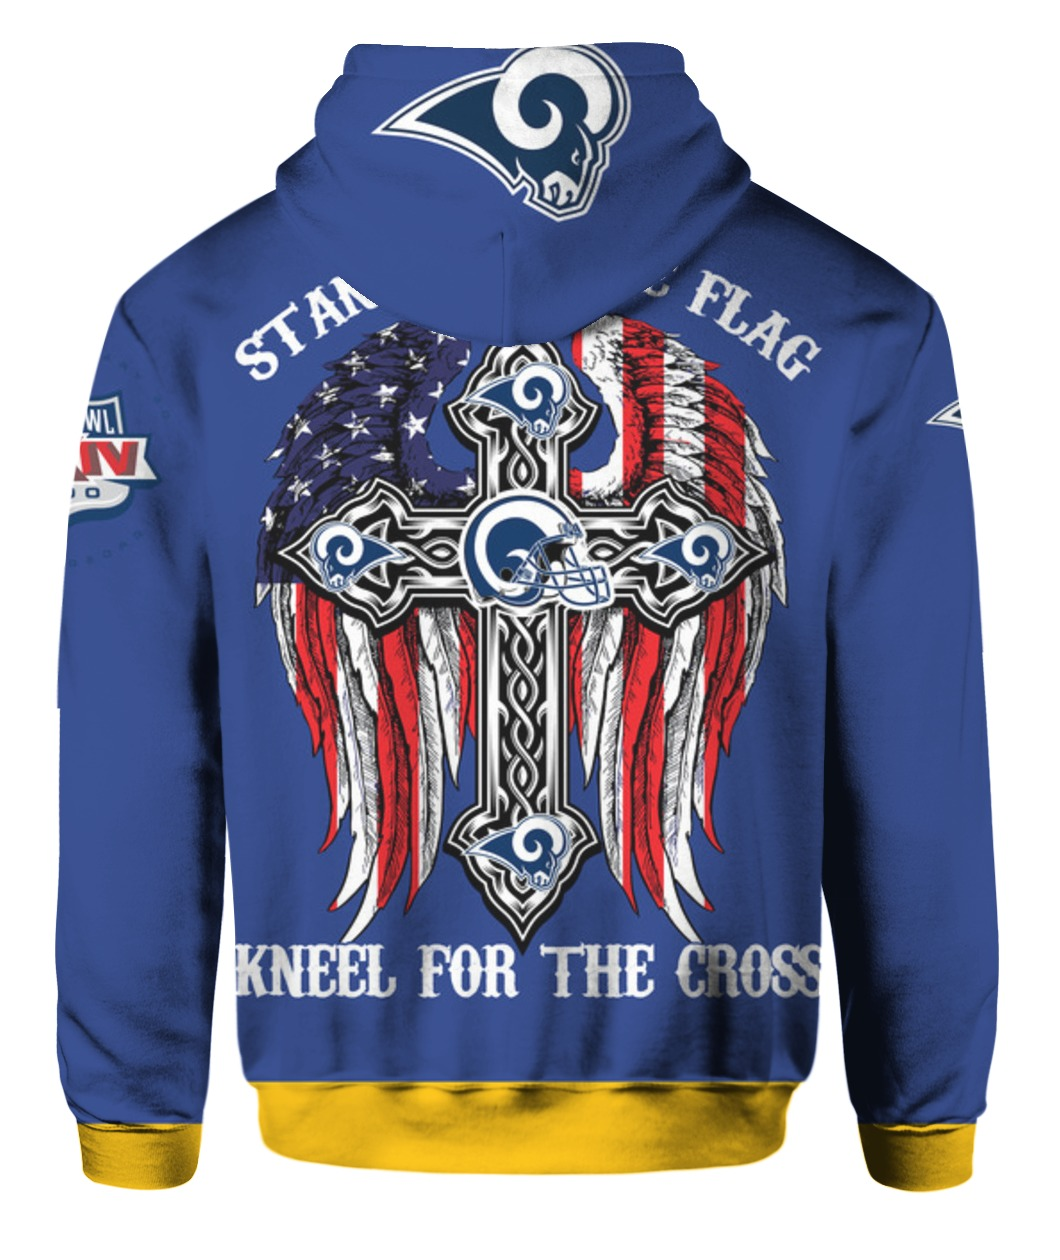 Stand for the flag kneel for the cross los angeles rams all over print hoodie - back